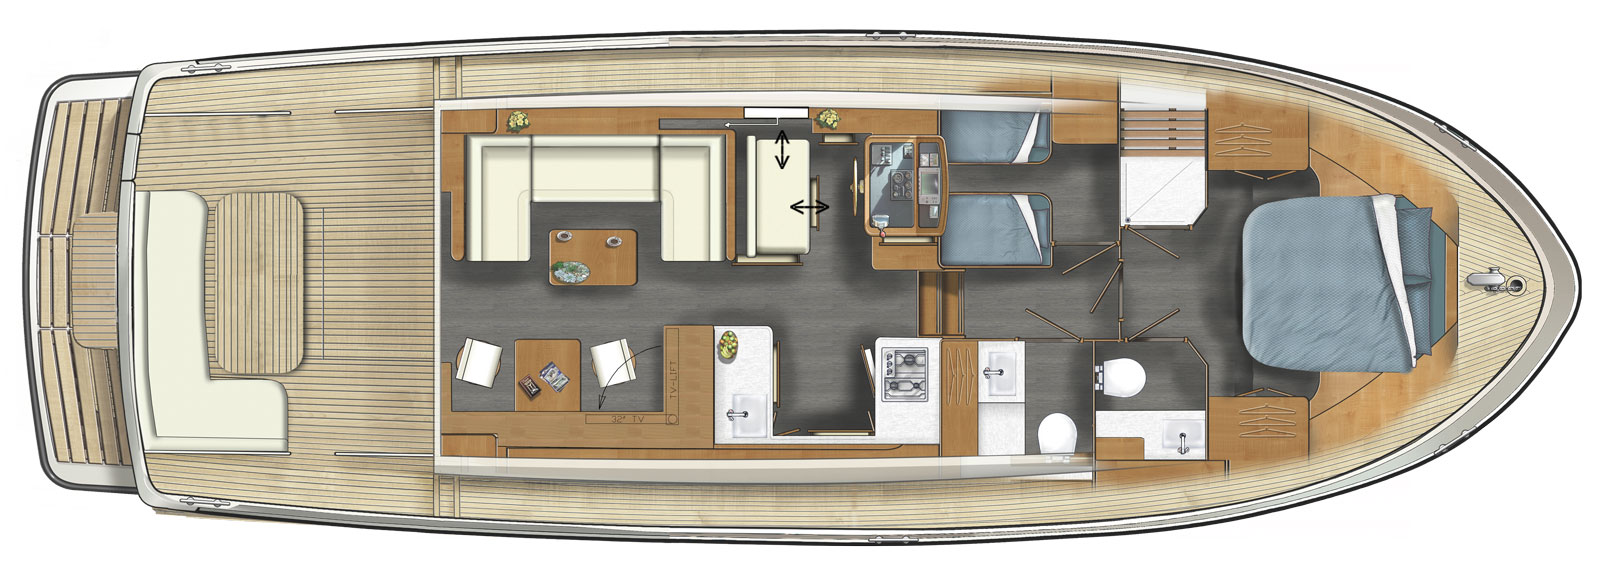 Linssen Grand Sturdy 45.0 Sedan layout